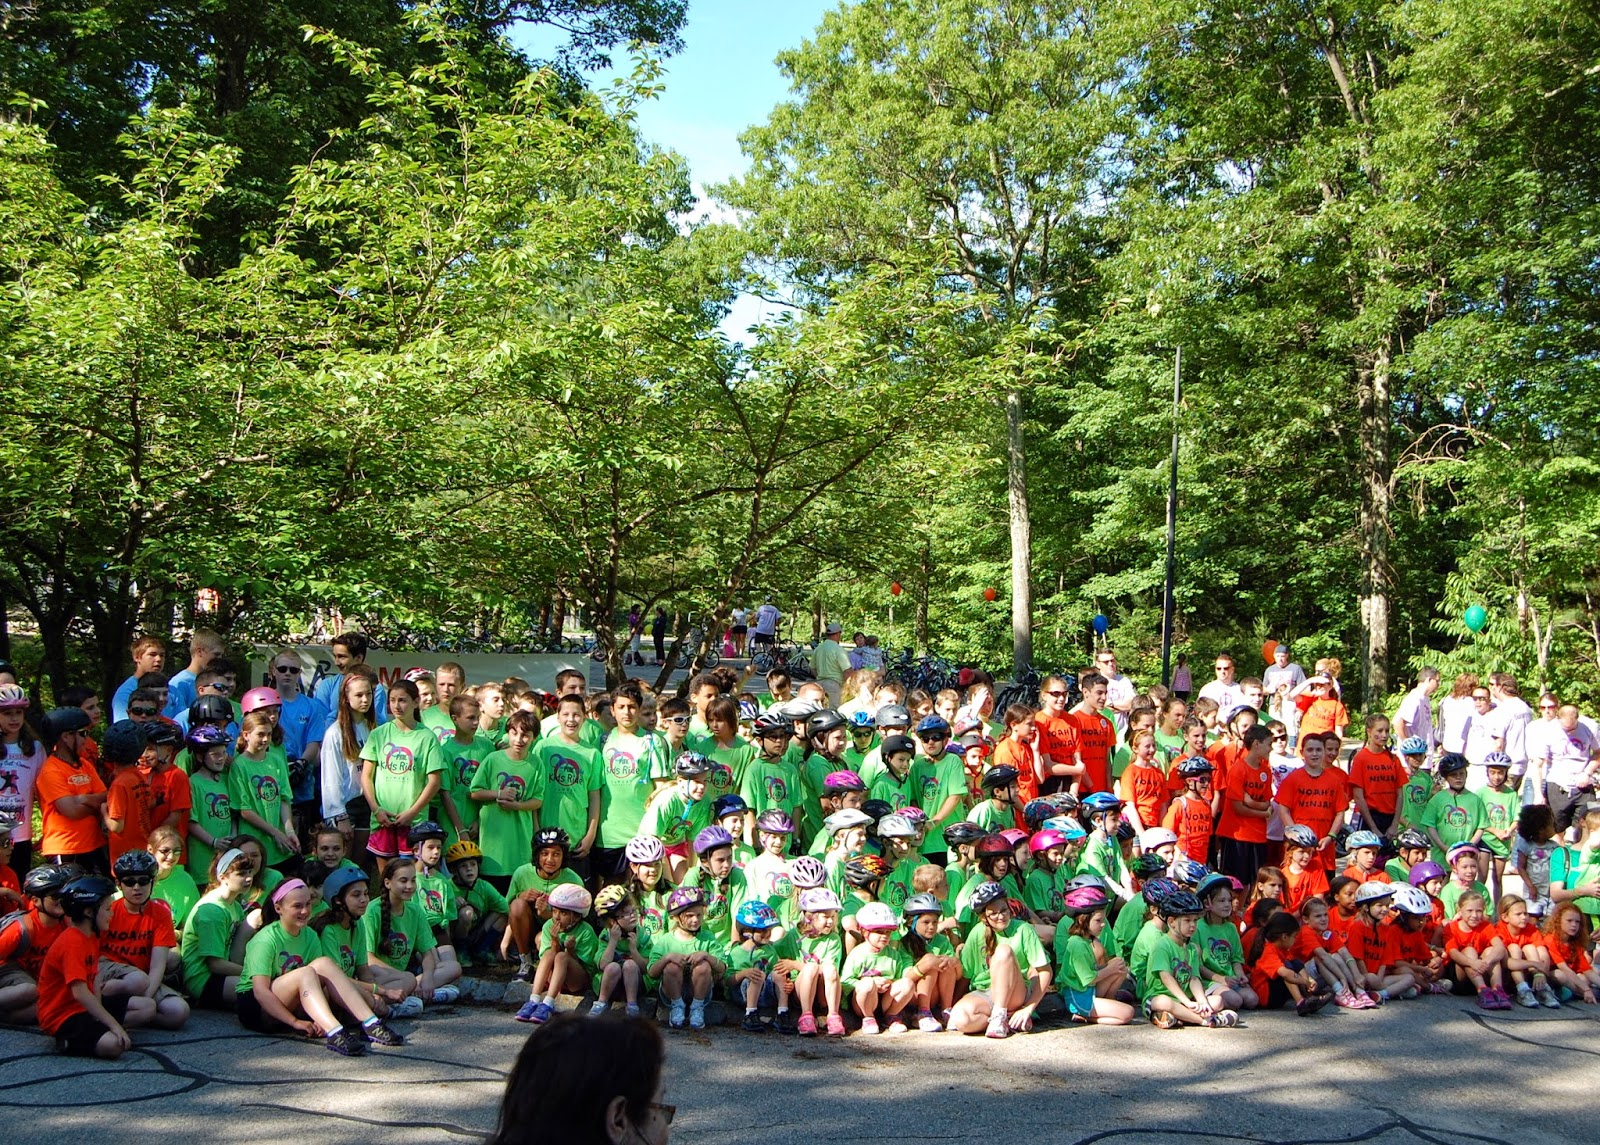 All the teams and riders pose before the ride